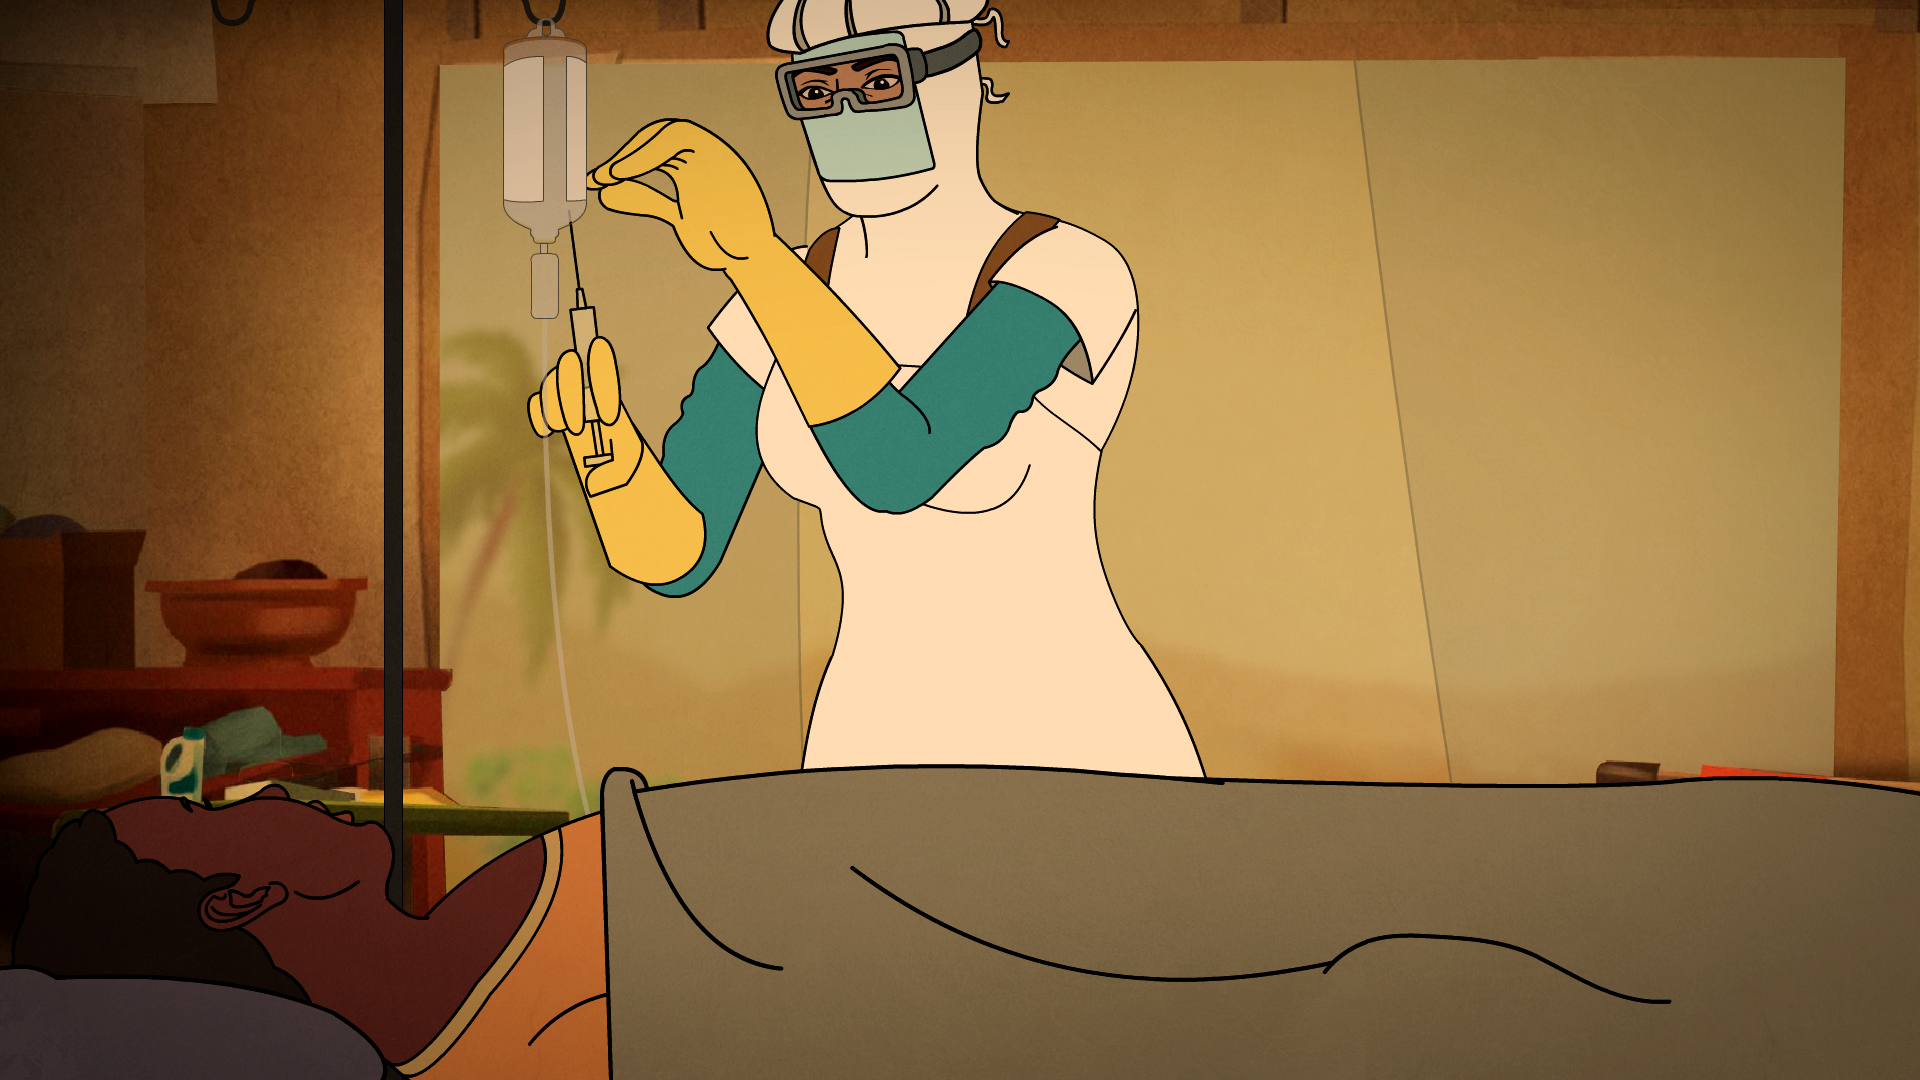 Compelling animation looks to dispel Ebola myths